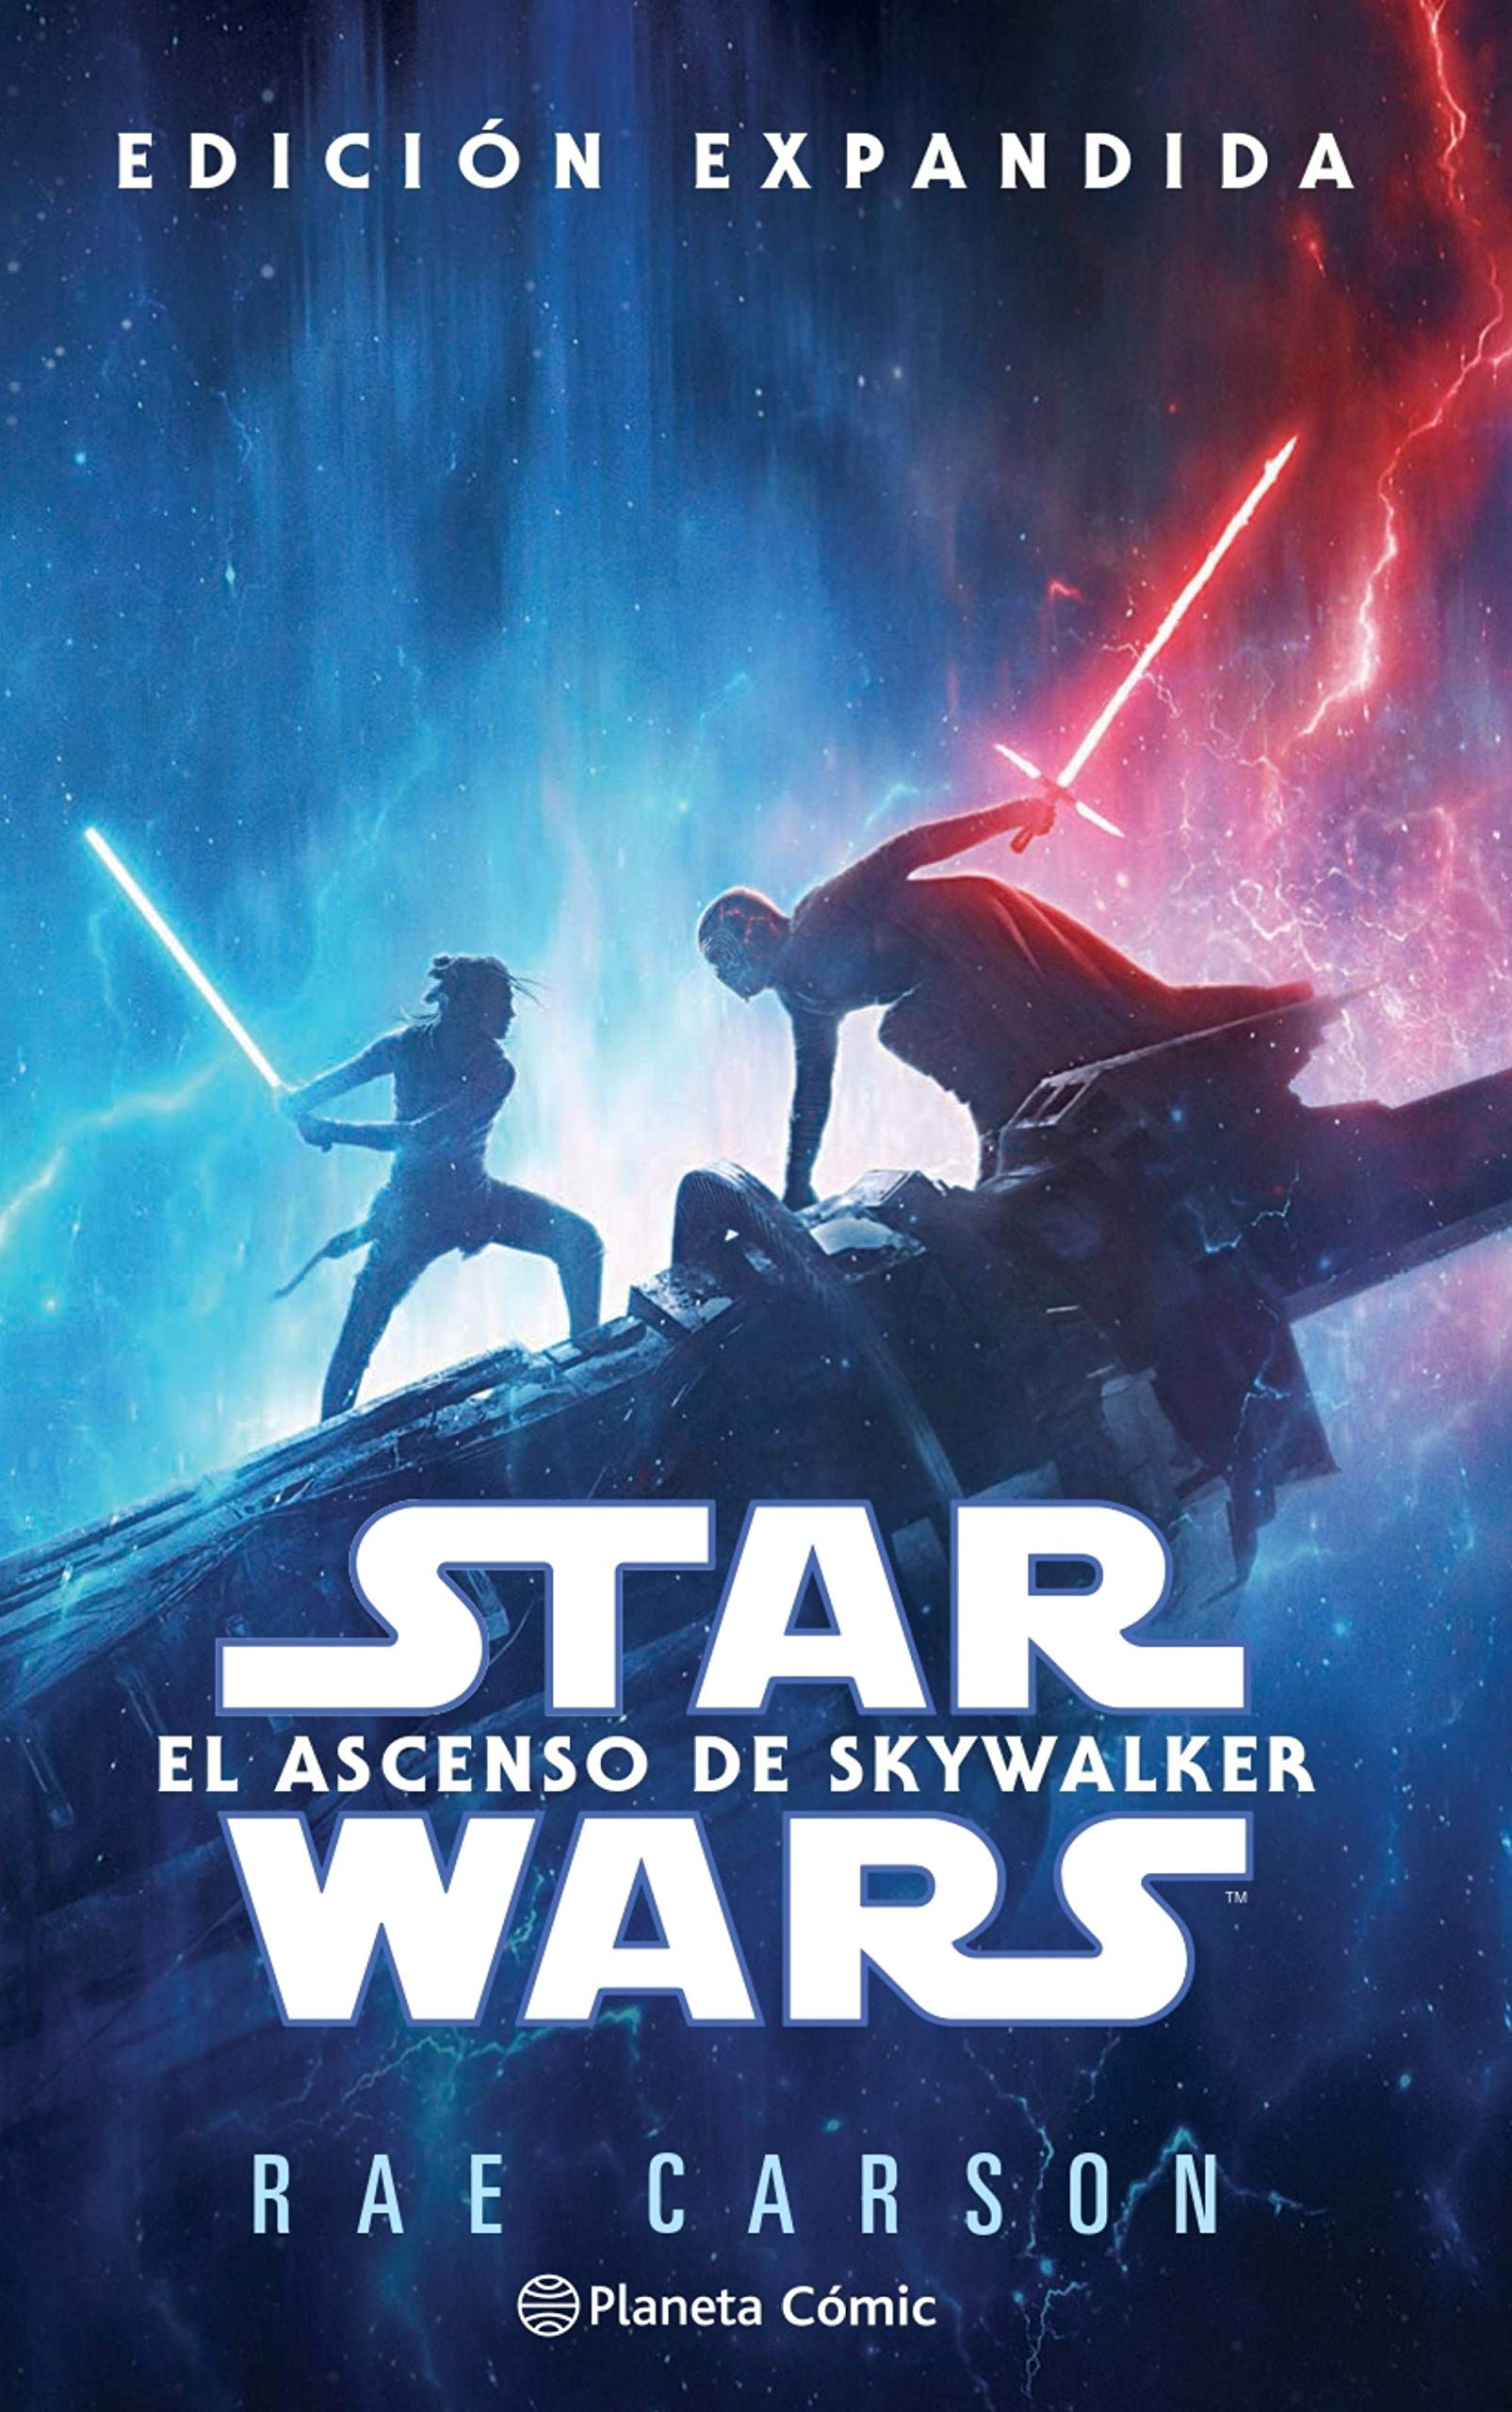 Star Wars Episodio Ix El Ascenso De Skywalker Novela Star Wars Novelas Spanish Edition Carson Rae Muñoz Cunill Jaume 9788413411613 Books